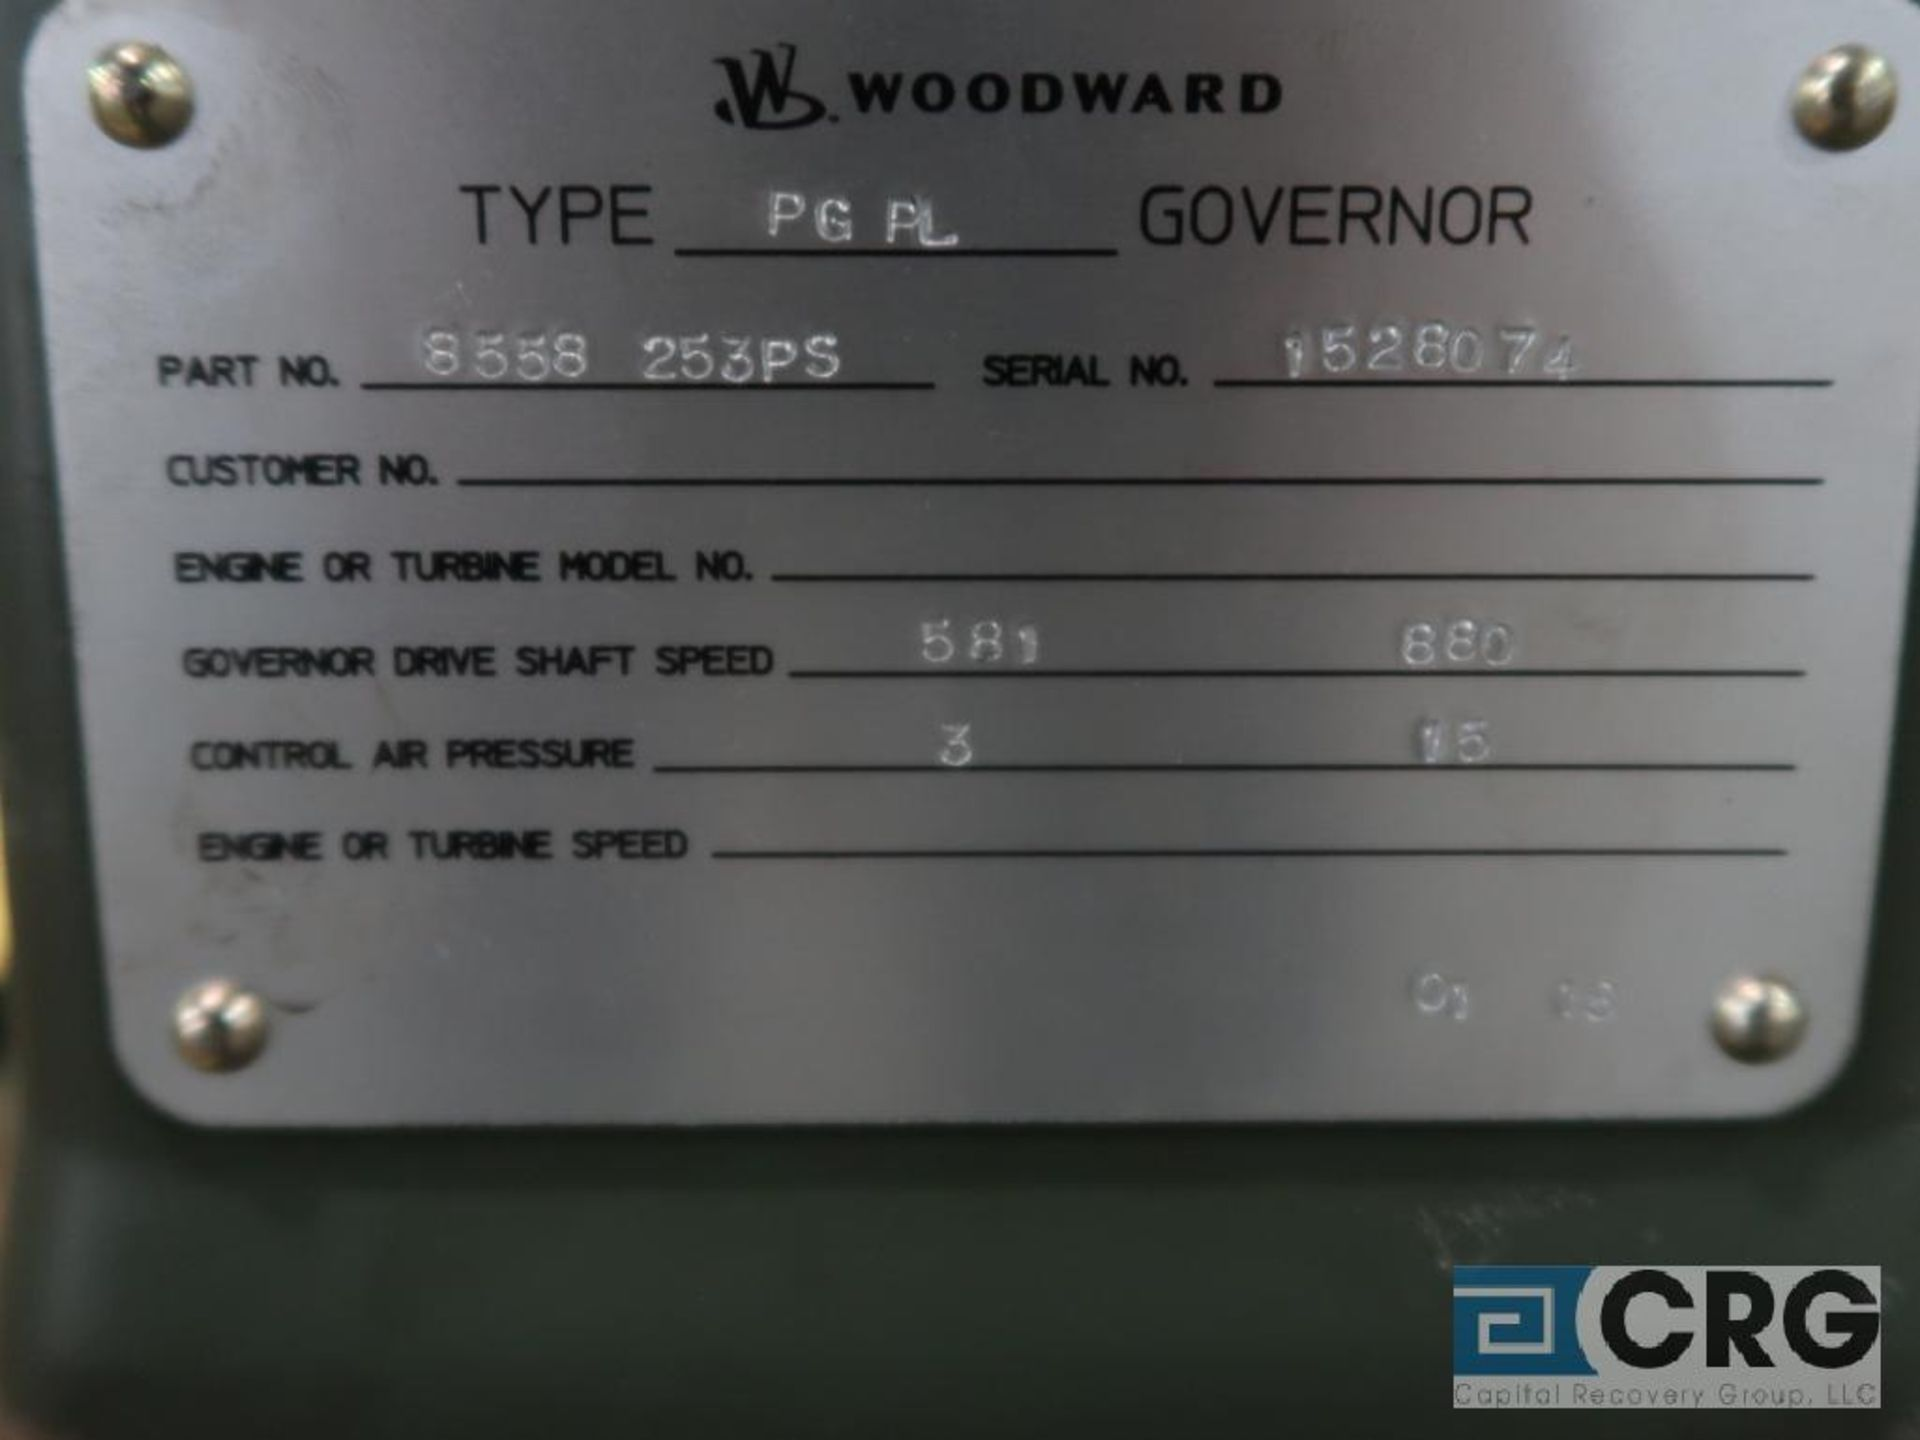 Woodward PGPL govenor, 380-1,470 RPM, s/n 1528070 (Finish Building) - Image 2 of 2